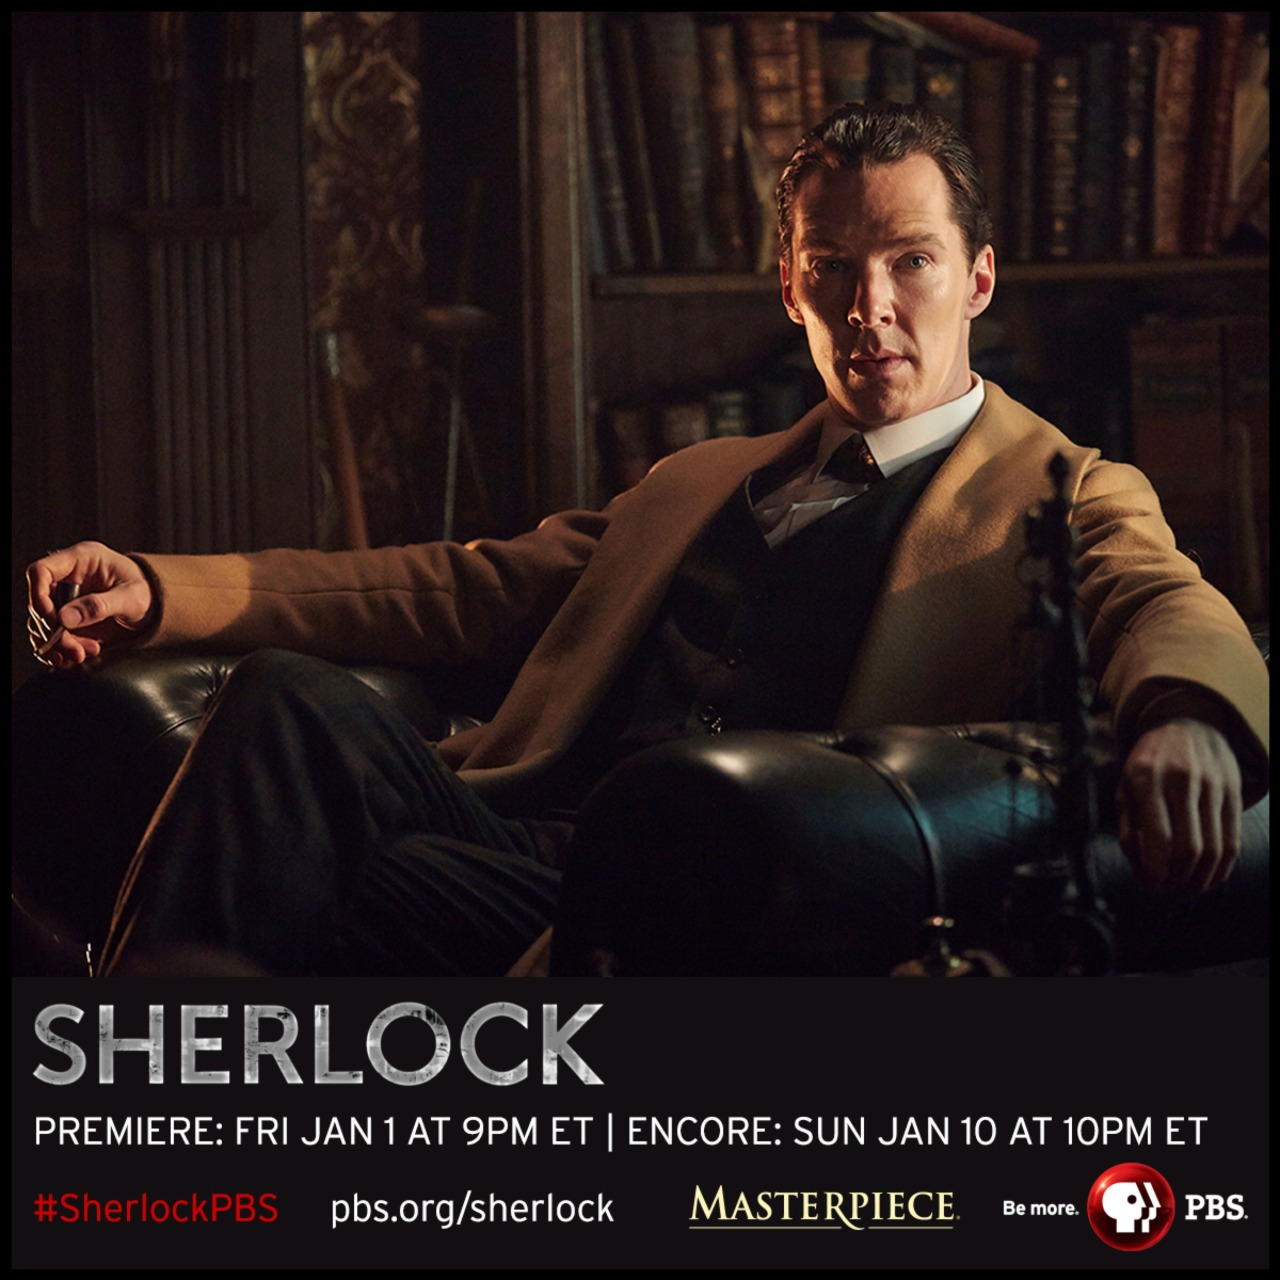 pbstv:  As Thanksgiving draws near we're thankful for these NEW Sherlock photos!   Get a closer look at the upcoming special – portraits, behind-the-scenes and more at PBS.org/Sherlock  xxhttp://www.denofgeek.com/tv/sherlock/37949/sherlock-benedict-cumberbatch-on-the-abominable-bride (full round table) Benedict Cumberbatch chats about taking his Sherlock Holmes back to the  Victorian era in the Sherlock Special, The Abominable Bride…Back in February of this year, details on the Sherlock  Christmas Special were thinner on the ground than incriminating  footprints after heavy rain. We had no title, trailer or synopsis for  the Victorian-set episode, just a single image of Benedict Cumberbatch  and Martin Freeman decked out in nineteenth-century clobber.Armed with only that, it was the task of a group of journalists  visiting the set to turn detective and find out what could be deduced  about the Special. Facing cast and creators well-used to the ducks and  dives of interviews able to reveal almost nothing, below are the results  of a rapid-fire interrogation of Benedict Cumberbatch…How did you respond when they said they wanted to do a Victorian Holmes?I was thrilled! I went, at last, I can have a fucking  haircut [laughter] I can slick it back and not have that ridiculous mop  of curls on my head. And then I went you're mad, what?The first pitch was quite light. It was at the end of the third  episode of the last season and I genuinely didn't understand how they  were going to get away with it. And then the more detailed pitch came  when they were talking about series four as well and I went, okay, this  is going to be great fun. And it really is.It's so nice to play him in his era. The things that are slightly  more heavy-lifting in the modern era in that there's a man clearly  slightly out of his time, it's put him back in the era that he's written  in originally, it's a joy. It feels easier to a degree. It's just  things that I tried to impose a little bit on our modern version, things  like physicality, stature, a lot of that's done by the body of the  clothing and collars and the deerstalker and cape, so that's an absolute  delight. Yet it doesn't feel like cliché because you're functioning in them  rather than quoting them. You're not just bringing them out, they were  functional in that era, they were de rigeur items of fashion which have  just become iconic for him, but also very useful.Has the change in period affected your performance?I'm sure it has.Sherlock is more at peace with his surroundings and environment?A little bit, a little bit. When he's in full Victorian swing, it's a really lovely feeling.Is he still rude?Yes, he is still rude because he cuts through mediocrity. He's a  meritician, it's a meritocracy, so it doesn't matter if you're Lord and  Lady such-what or if you're driving a hansom cab, or if you're one of  the Baker Street boys, it's just purely about what your worth is and  your qualities, it's not about social standing. So yeah, he is still  rude. He's rude to idiots or people who are pompous or sexist…he's quite  a crusader in that regard. That's always enjoyable to be.What's the relationship between him and Watson? Is Watson more in awe of Holmes?I think there's always a bit of respect rather than awe.Is there still the 'bromance'?You just really want to write the word 'bromance' [laughter]There can't be an article without it in there!There can. You can be the first! Strive for change in the press. [Laughter]It's definitely a companionship that's evolved in our version, so  we're not regressing it back to 'wow! Golly Holmes' or some kind of  Nigel Bruce-esque adoration, it's more complex than that. It is an  examination of what they were in the original stories but with our  flavour.We don't want to make it into a sketch, we don't want to make it into  something ridiculous or comic but at the same time, because we want to  be true to the original but at the same time we've got to be true to our  version of it. It's that very delicate balancing act.Is there an element of mischief in deciding to do this now?Not too much. No, not too much.Because it's confounding what fans are going to expect following a cliff-hanger?Possibly.But there's some fun in that?Yeah. I suppose there's some sort of gleeful hand-rubbing, if it's  needed, from Mark and Steven, but when you're playing it, you just get  on and do the thing. You're committed to what you're playing.Because of the traditional setting, do you feel the weight of other portraits of Holmes?Not really, no. We've established ours and so have others. We're  still very different from the Guy Ritchie version. This isn't steam-punk  action drama, it's still our version. It still has the nuances of the  original book with our twists. So, no. There will always be comparisons,  always, you can't help that.As I keep guessing, I think I'm the seventy-sixth and Robert  Downey-Jr is the seventy-fifth. When you're one of that many, and some  truly immeasurably iconic previous versions in the original era, it's  not healthy to compare.The other gorgeous thing about going back in time to this is that you  can actually look to the books as your source material, which is what I  always do for our version anyway but it's even more qualifiable to lean  on them for some inspiration, insight and characterisation, so that's  been good, more than going back to other versions, is just going back to  the source material.Do you think you would have wanted to do period Holmes if that was the series?Yeah! Very much, very much. I've really, really loved it. I said to  Sue this morning, 'it's going to be hard to…', you know, talking about  maybe doing it again. It's really enjoyable.Do you almost prefer it?I don't know. They're too different to compare in some ways. Yeah,  I'm really crap at answering 'favourite' questions [laughter].There must be something satisfying for you about having slicked-back hair and…Because that's the more familiar. Like I say at the beginning, you  feel like some of the weight is taken off you, you're not trying to  establish this man in the 21st century.I don't know any other actor that's been that spoiled with this role.  Well, Rathbone leaped forward to the forties and fought Nazis, so that  was their version of it. There's quite a lot of modern clobber.  I think I'm pretty much the only one that's done that quite so severely  as we have.The original Holmes was a champion boxer. Are we going to be seeing you fighting?Yeah, I'm always up for more fights. I keep saying that to them. I do like throwing myself around a set.Is your Victorian Holmes quite progressive? You said earlier that he's calling people out for being sexist and so on?I think he always was, he was very charming with women. He gave a lot  of people respect that otherwise you wouldn't necessarily have thought  in that era he would. He's a man who goes for quality rather than the  social hierarchy, but I don't think he's any more that than he is in the books is what I was trying to say.There's no danger that modern fans might be alienated by a Victorian Holmes?I don't know. I don't think so though, he's got a lot of fight in  him, he hasn't become patronisingly nice and charming. He defines things  as they are, he's very straight with people.And you're smoking a pipe this time?It's a pyrotechnic pipe. I'm not smoking it, it's an effect. Even  that is fun, just to have that as another part of him. There might be a  magnifying glass that might be slightly bigger than the one I usually  use, it might be slightly more familiar…Any syringes full of cocaine?Again, the props department are having a fantastic time on this job. All sorts of things are being brought into play.Read more:  Steven Moffat once said that you have to wear the Belstaff coat in every Sherlock. But you don't in this?It's not contractual [laughter]. It's getting a bit tatty now. Mark  gave me one at the end of the first series, I was like 'what are you  doing?' he said 'you should enjoy this, just enjoy it, because you're  only going to have two months of wearing it, you look great in it' and I  was like 'oh great' so I did for a little bit, but even then I started  to think 'well, it's not like somebody's going to take a photograph of  me now, but what if somebody accidentally did and it then says  'Wandering around Hampstead Heath in his fucking coat!' [laughter] to  seal my reputation as being a dick. So I felt self-conscious about it.But also, I had to give it back because we've run out of them.  Belstaff doesn't make them anymore and the replicas don't cut it so it's  back in the cycle of the ones we've got. I'm sure he'll wear his coat  again. It's like the hair, the coat, the key ingredients… but what  really brings me back for more cross-generationally is just the  evolution of him and the characters within the stories that you know and  the stories that we create out of the stories you know. That's the real  level of engagement with him I enjoy, the stuck-on bits of the doll  will hopefully change at some point because what goes on underneath has  to change a lot as well. As an actor, that's what intrigues us all to  come back and play these characters is that there is scope for them to  expand and change and evolve.Do you think doing a Christmas Victorian episode could become a bit of a tradition?Keep coming back for more? Maybe, maybe. I don't know. We'll see how  this one goes. I think if it becomes impossible to schedule a season  every year, year and a half then yeah, absolutely, why not.It's a great deal of fun, this, but it does advance things, it's not just on its own.How determined are you to keep making time for Sherlock?Pretty determined. I'm still enjoying it. We'll see how the next  series goes, but as it is in this room, as I've said many times before,  I'd love to keep ageing with him. Martin and I started this relatively  young compared to a lot of Holmes and Watsons, so why not?http://www.telegraph.co.uk/news/bbc/12012813/Sherlock-Christmas-special-to-include-secret-message-for-Chinese-fans.htmlx